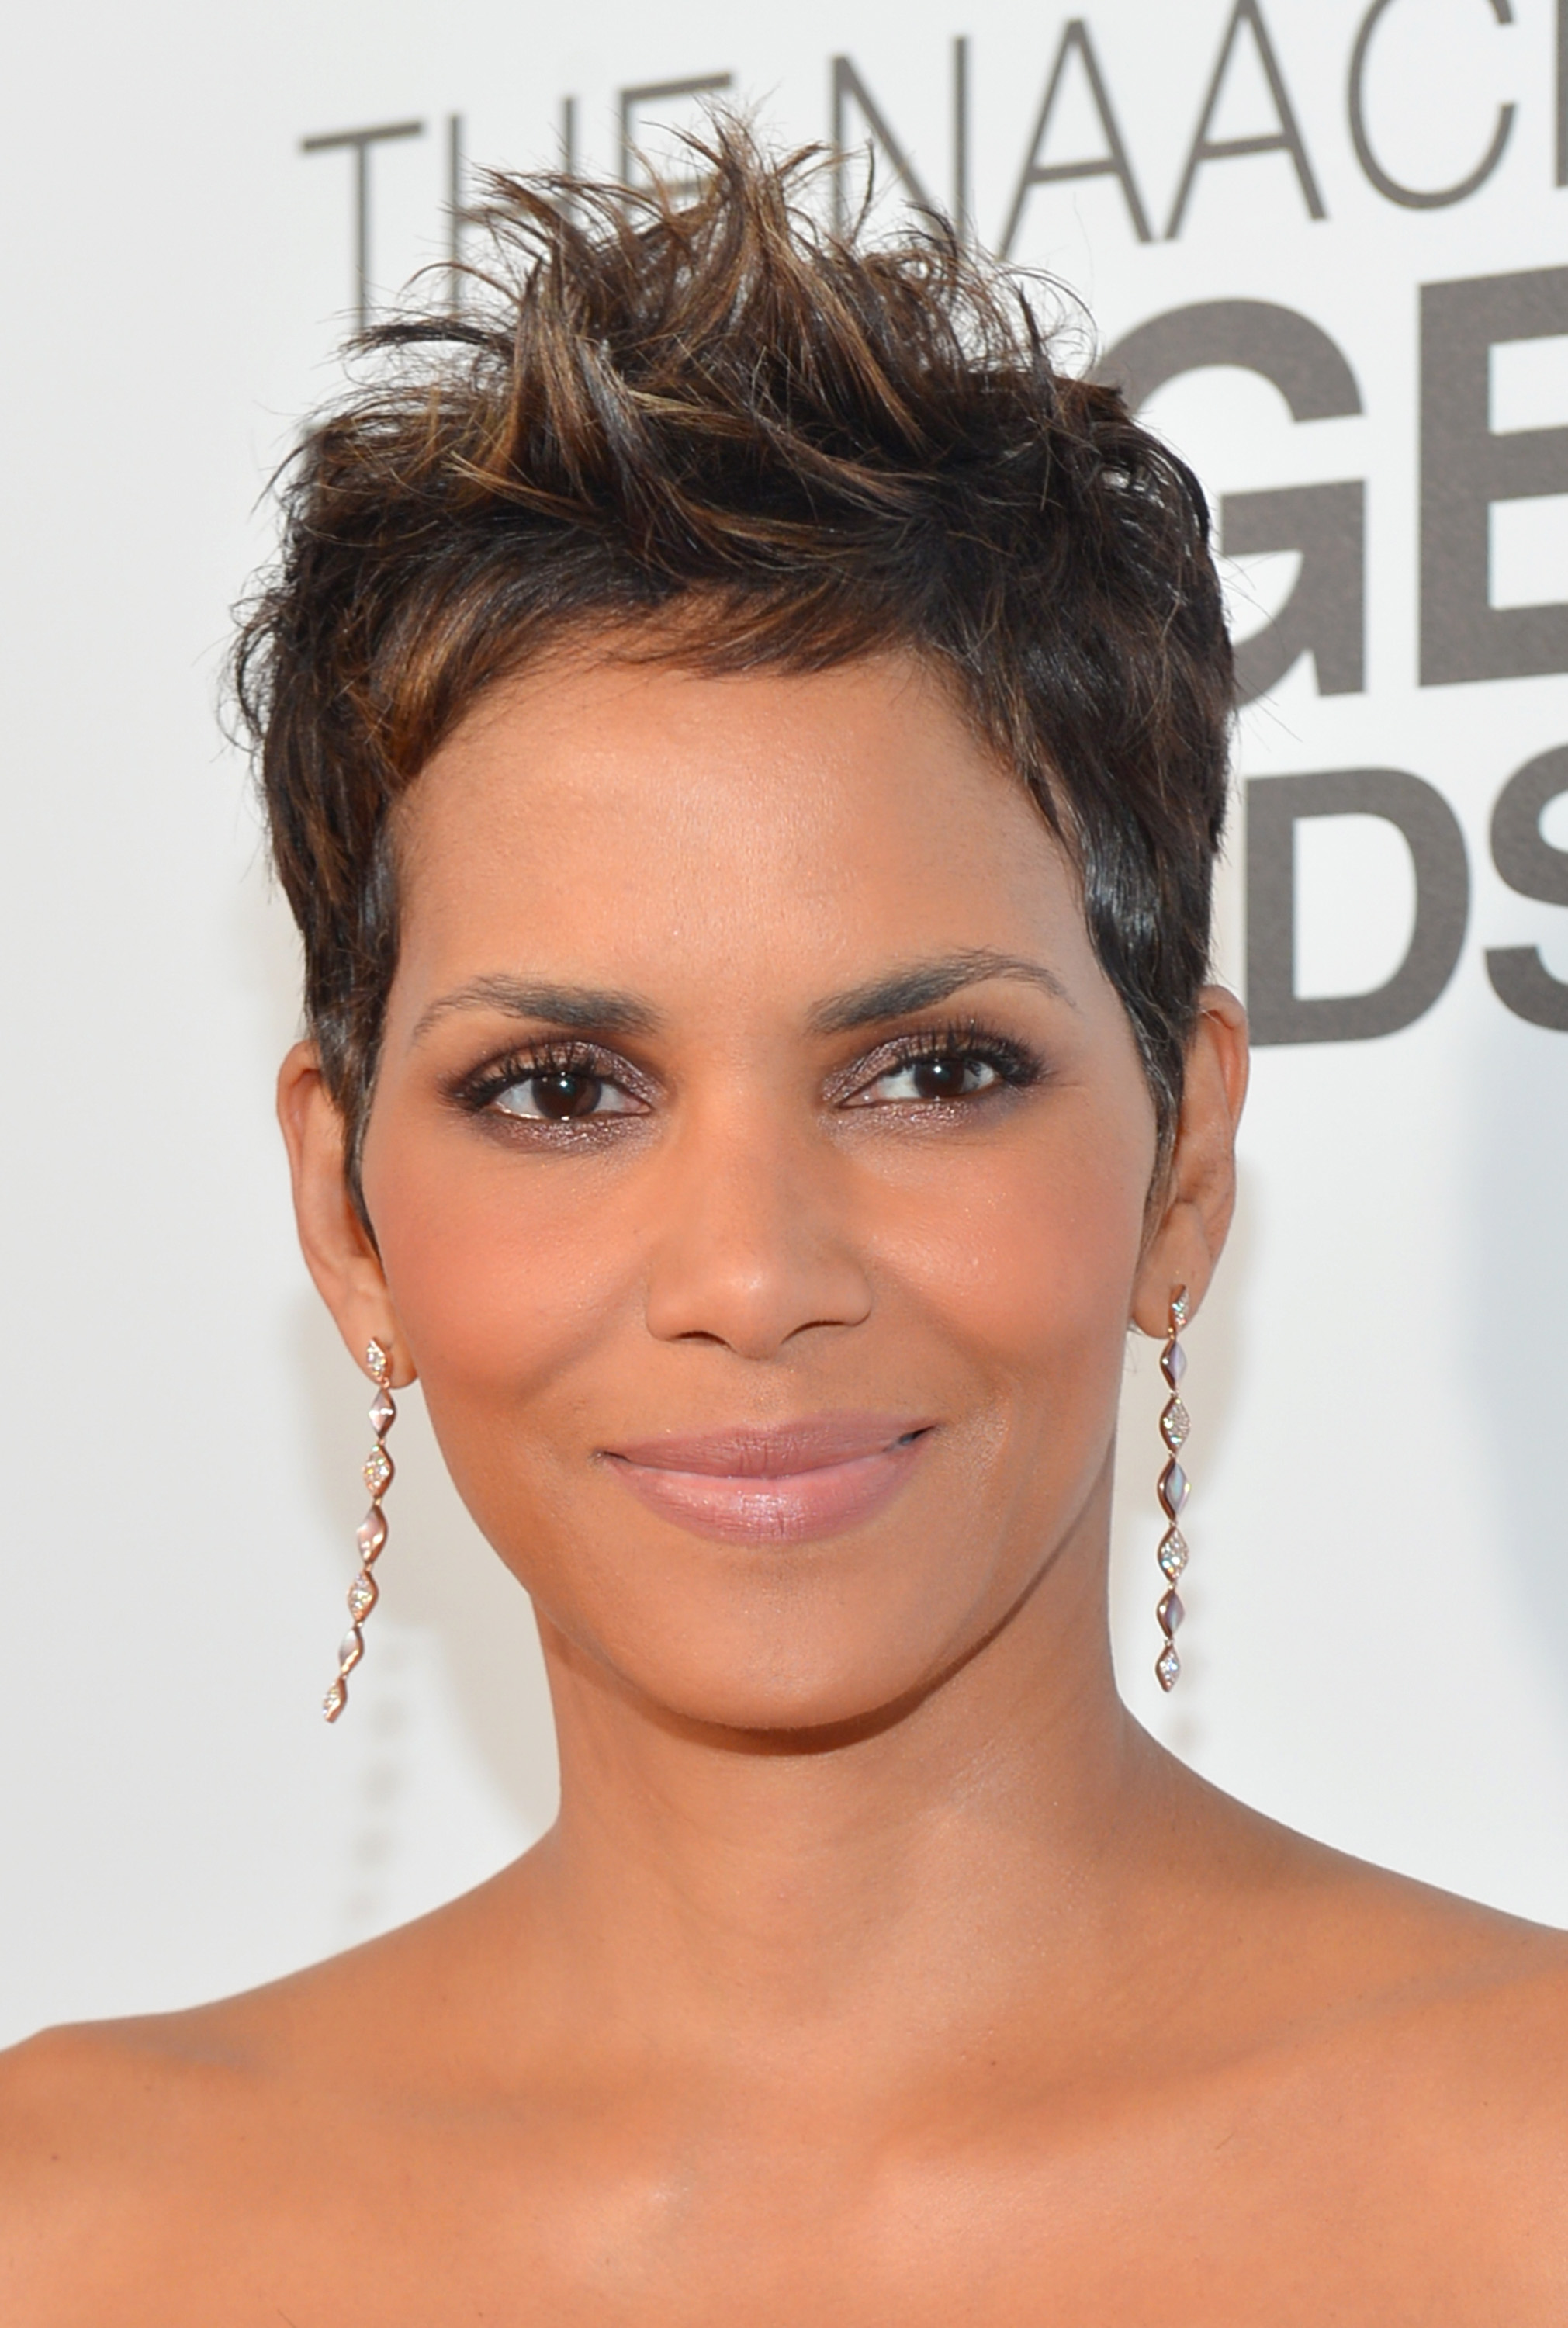 Short hairstyles for women - 35 advice for choosing - HairStyles for Women